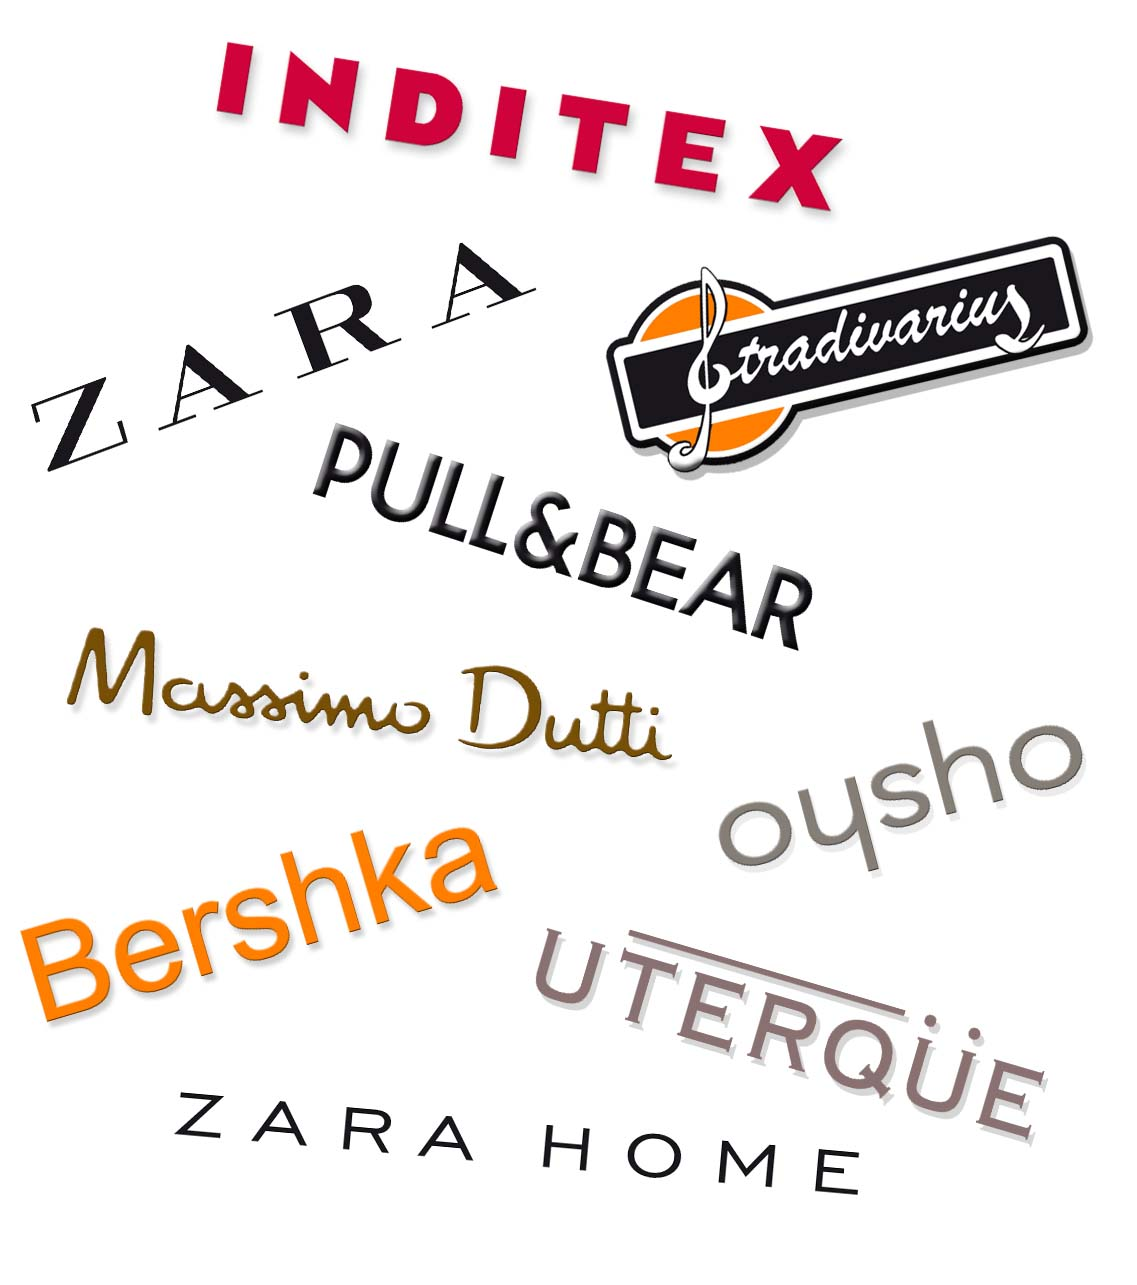 inditex group This timeline shows the number of stores of the inditex group worldwide from 2010 to 2016 in 2016, the inditex group operated 7,292 stores worldwide.